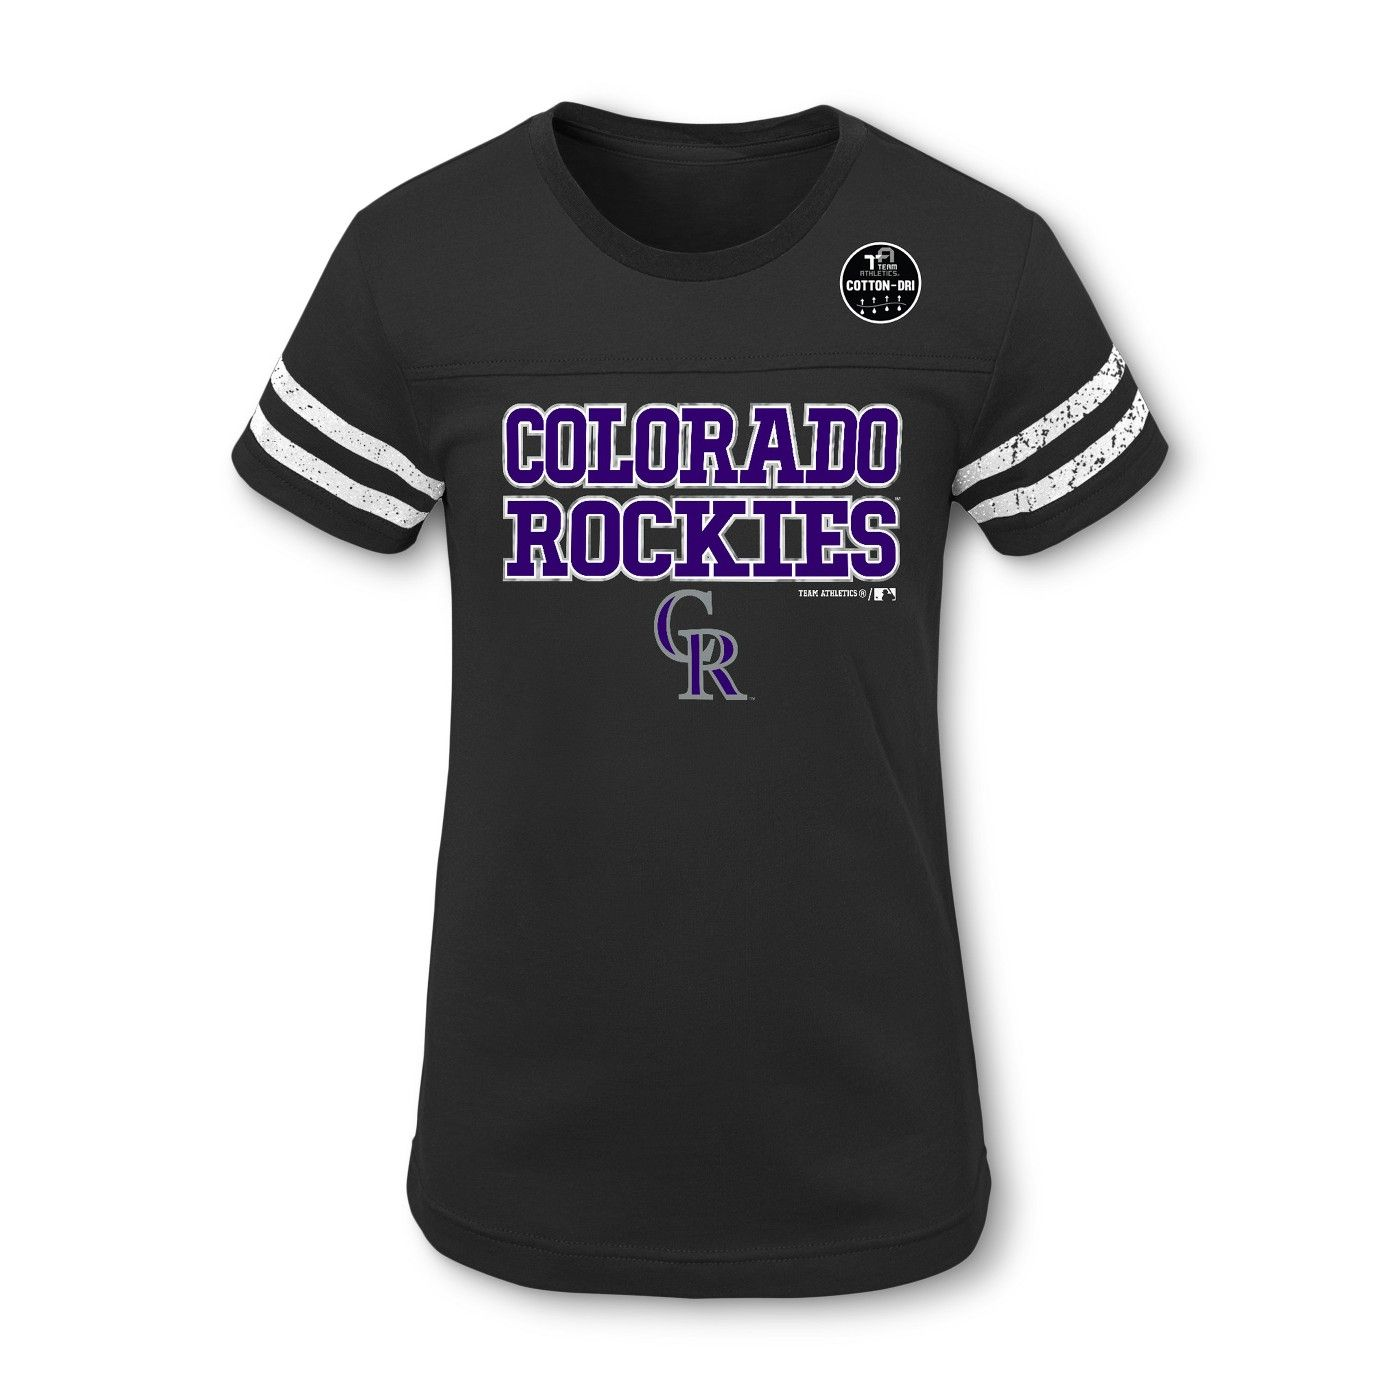 Colorado Rockies Girls Double Play T Shirt L Affiliate Girls Affiliate Rockies Co With Images Colorado Rockies Colorado Rockies Baseball Rockies Baseball Outfit